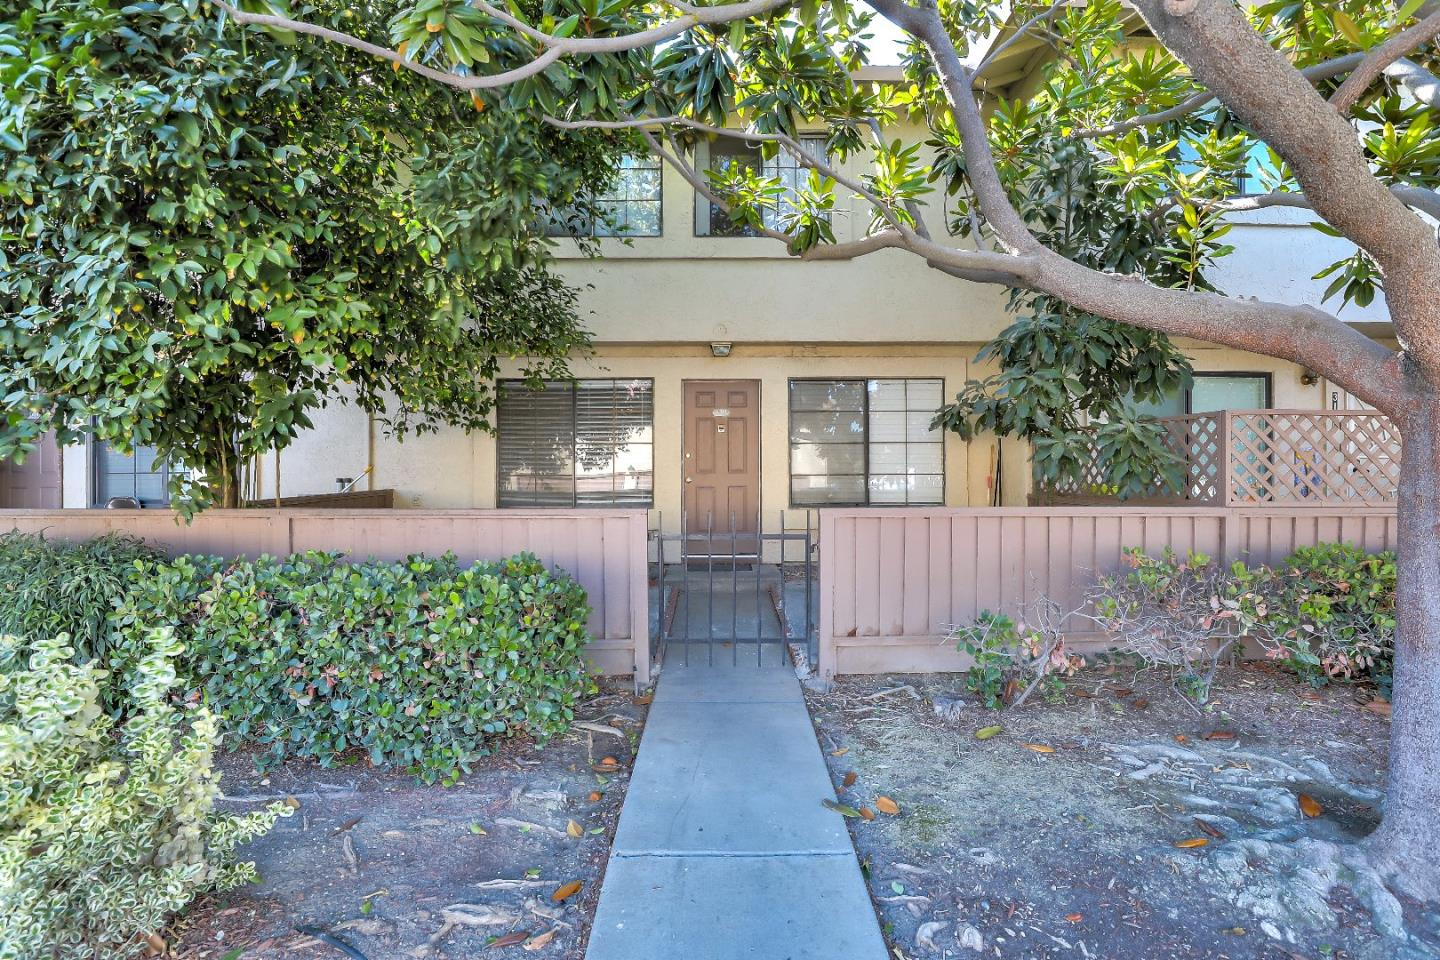 3188 Kenhill Drive San Jose, CA 95111 - MLS #: ML81722492